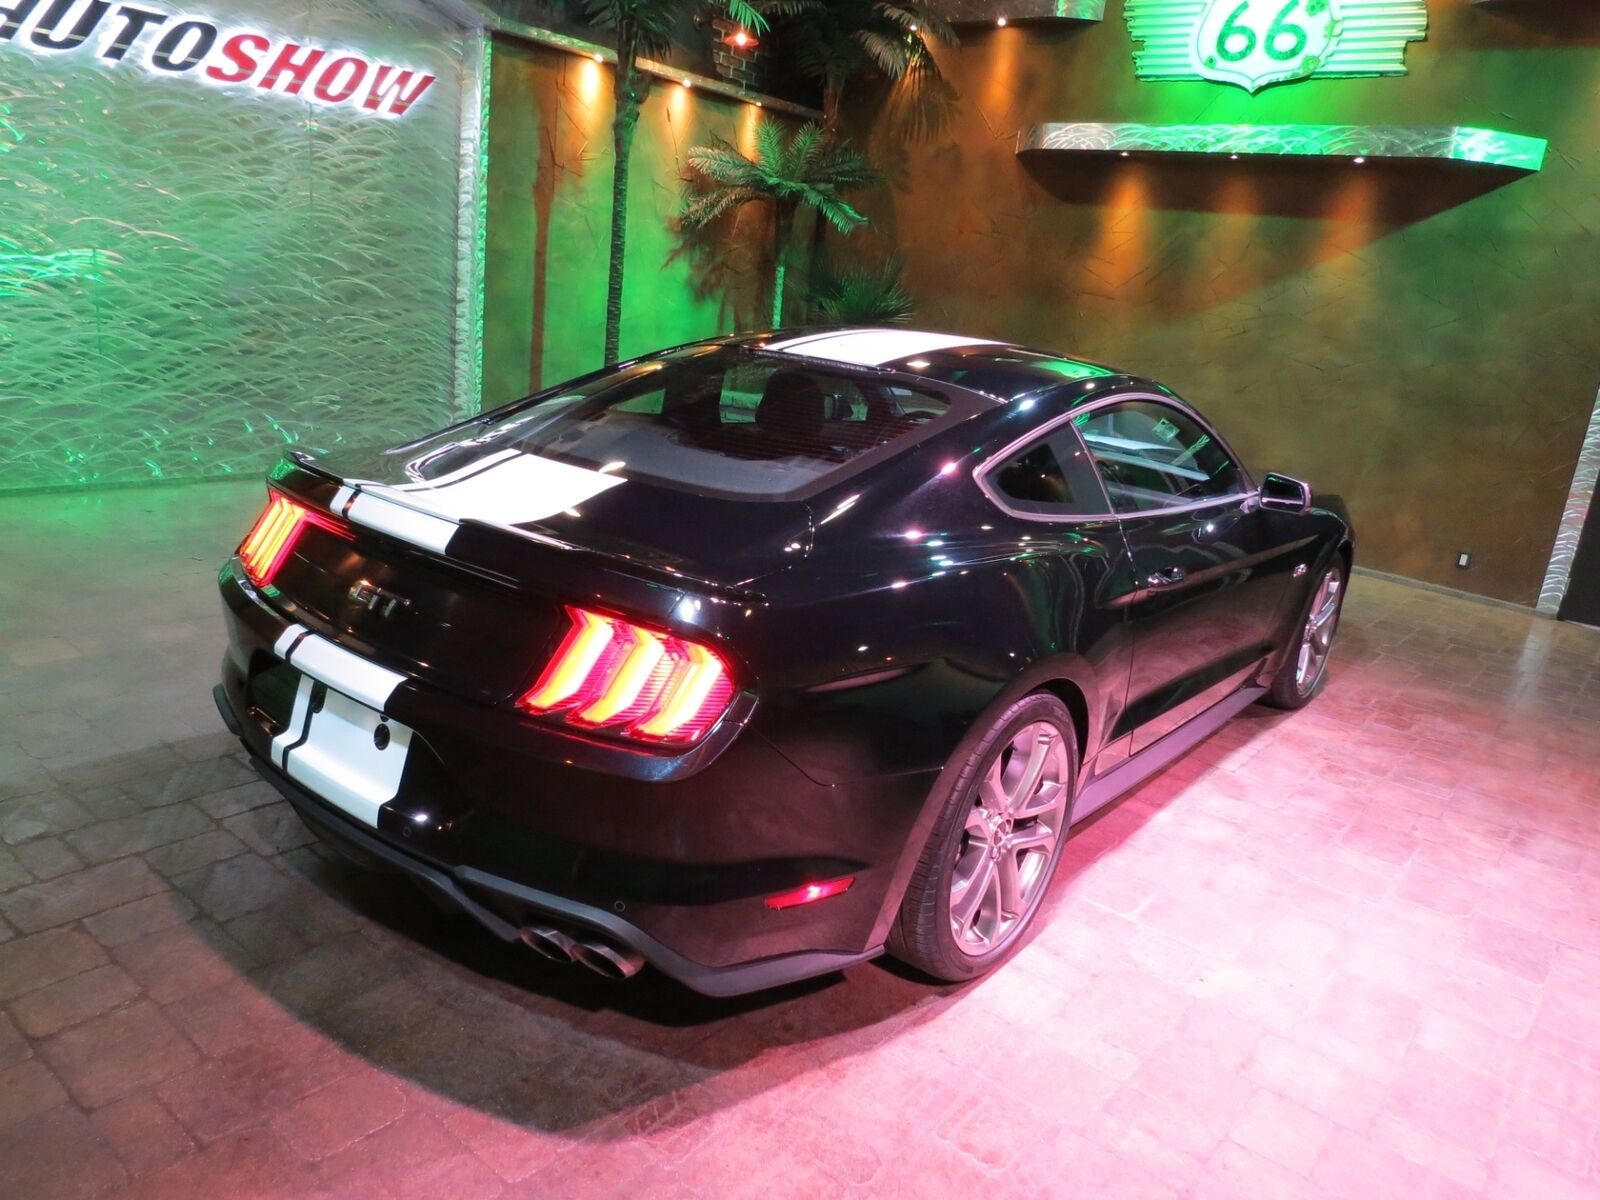 Ford Mustang 2.3 Turbo 0-60